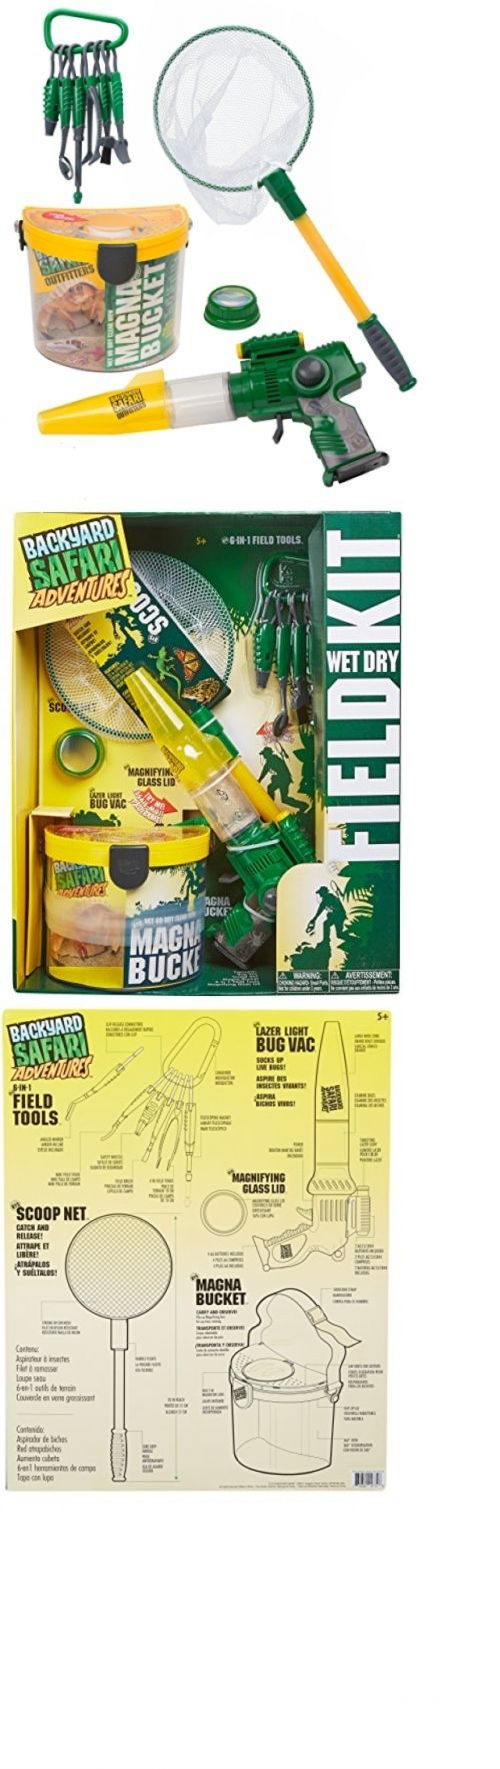 other science and nature toys 11737 backyard safari field kit bug